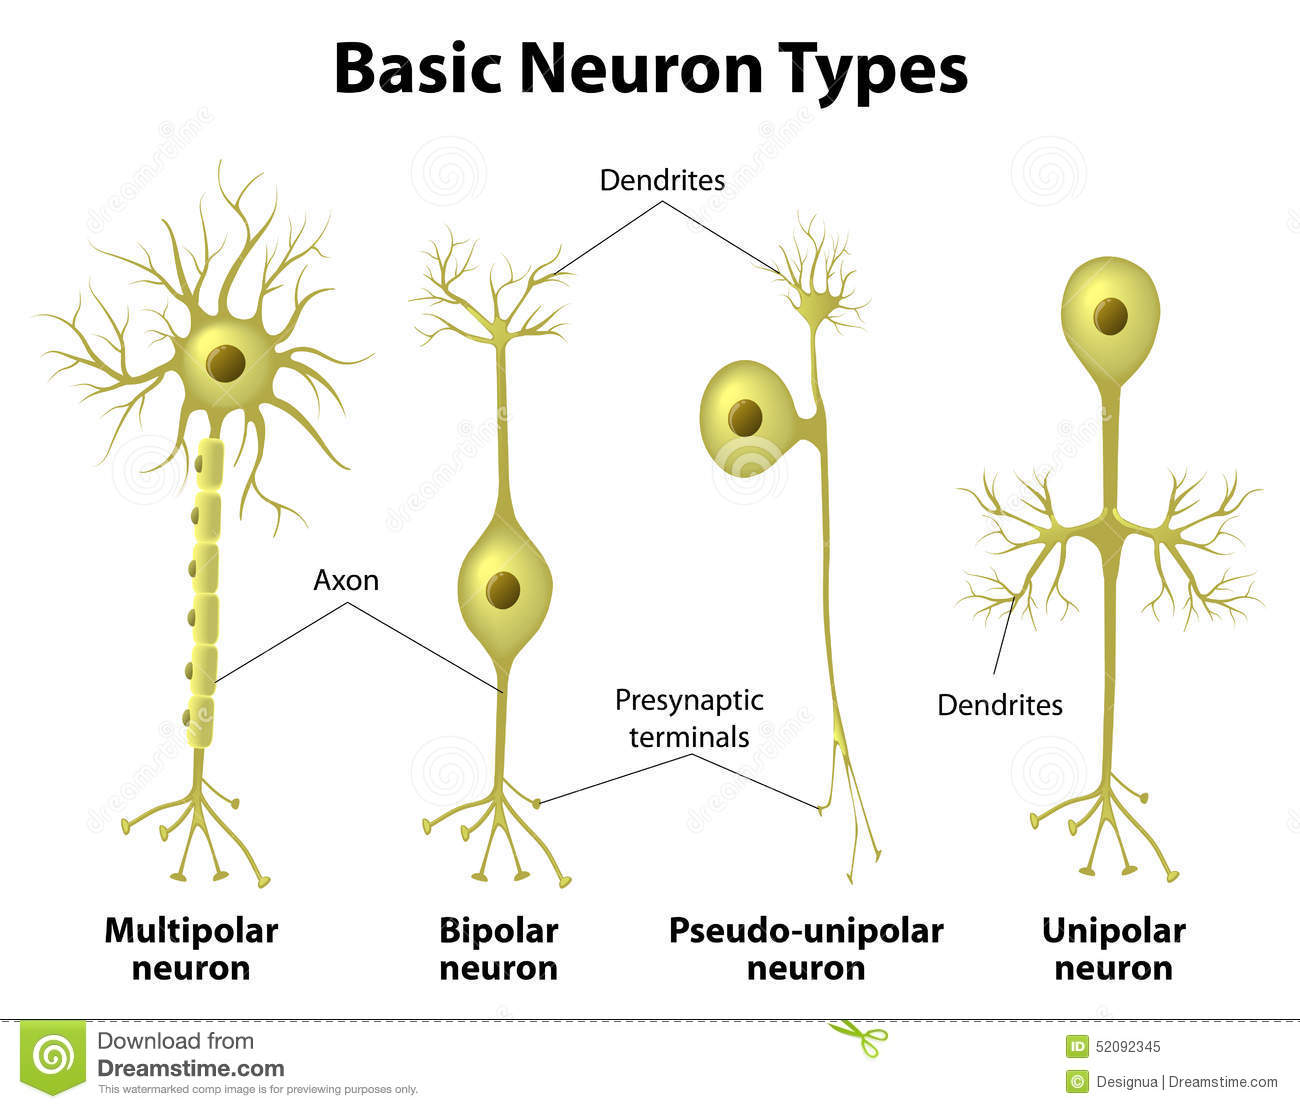 What are the fundamental facts that we know about neurons? - Quora